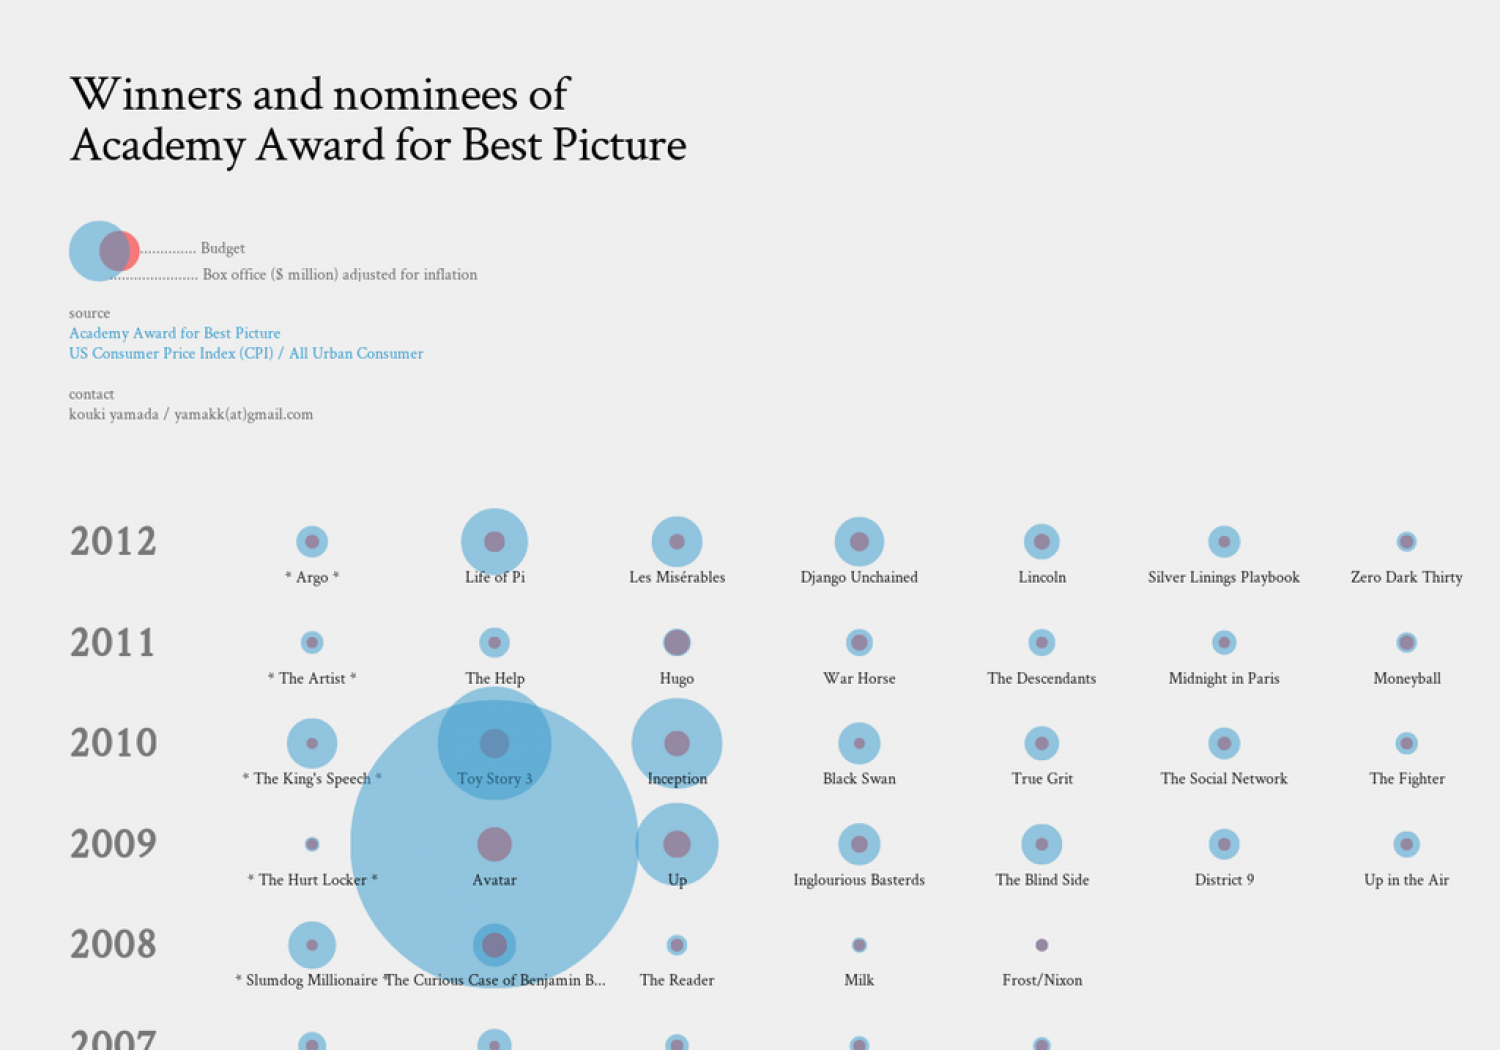 Winners and nominees of Academy Award for Best Picture 2014 Infographic